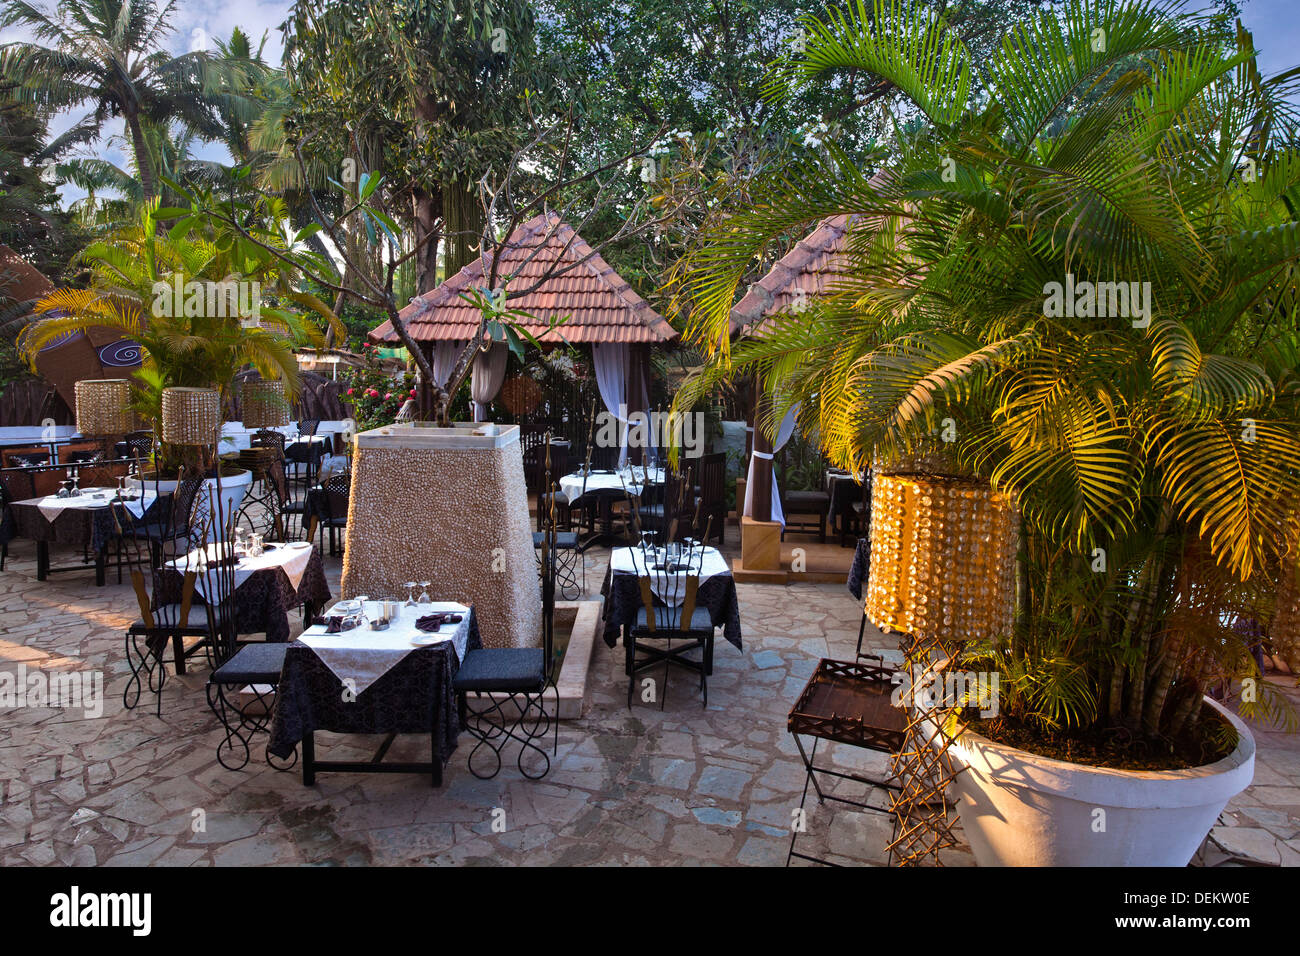 Table and chairs at a restaurant, A Reverie, Calangute, North Goa, Goa, India - Stock Image